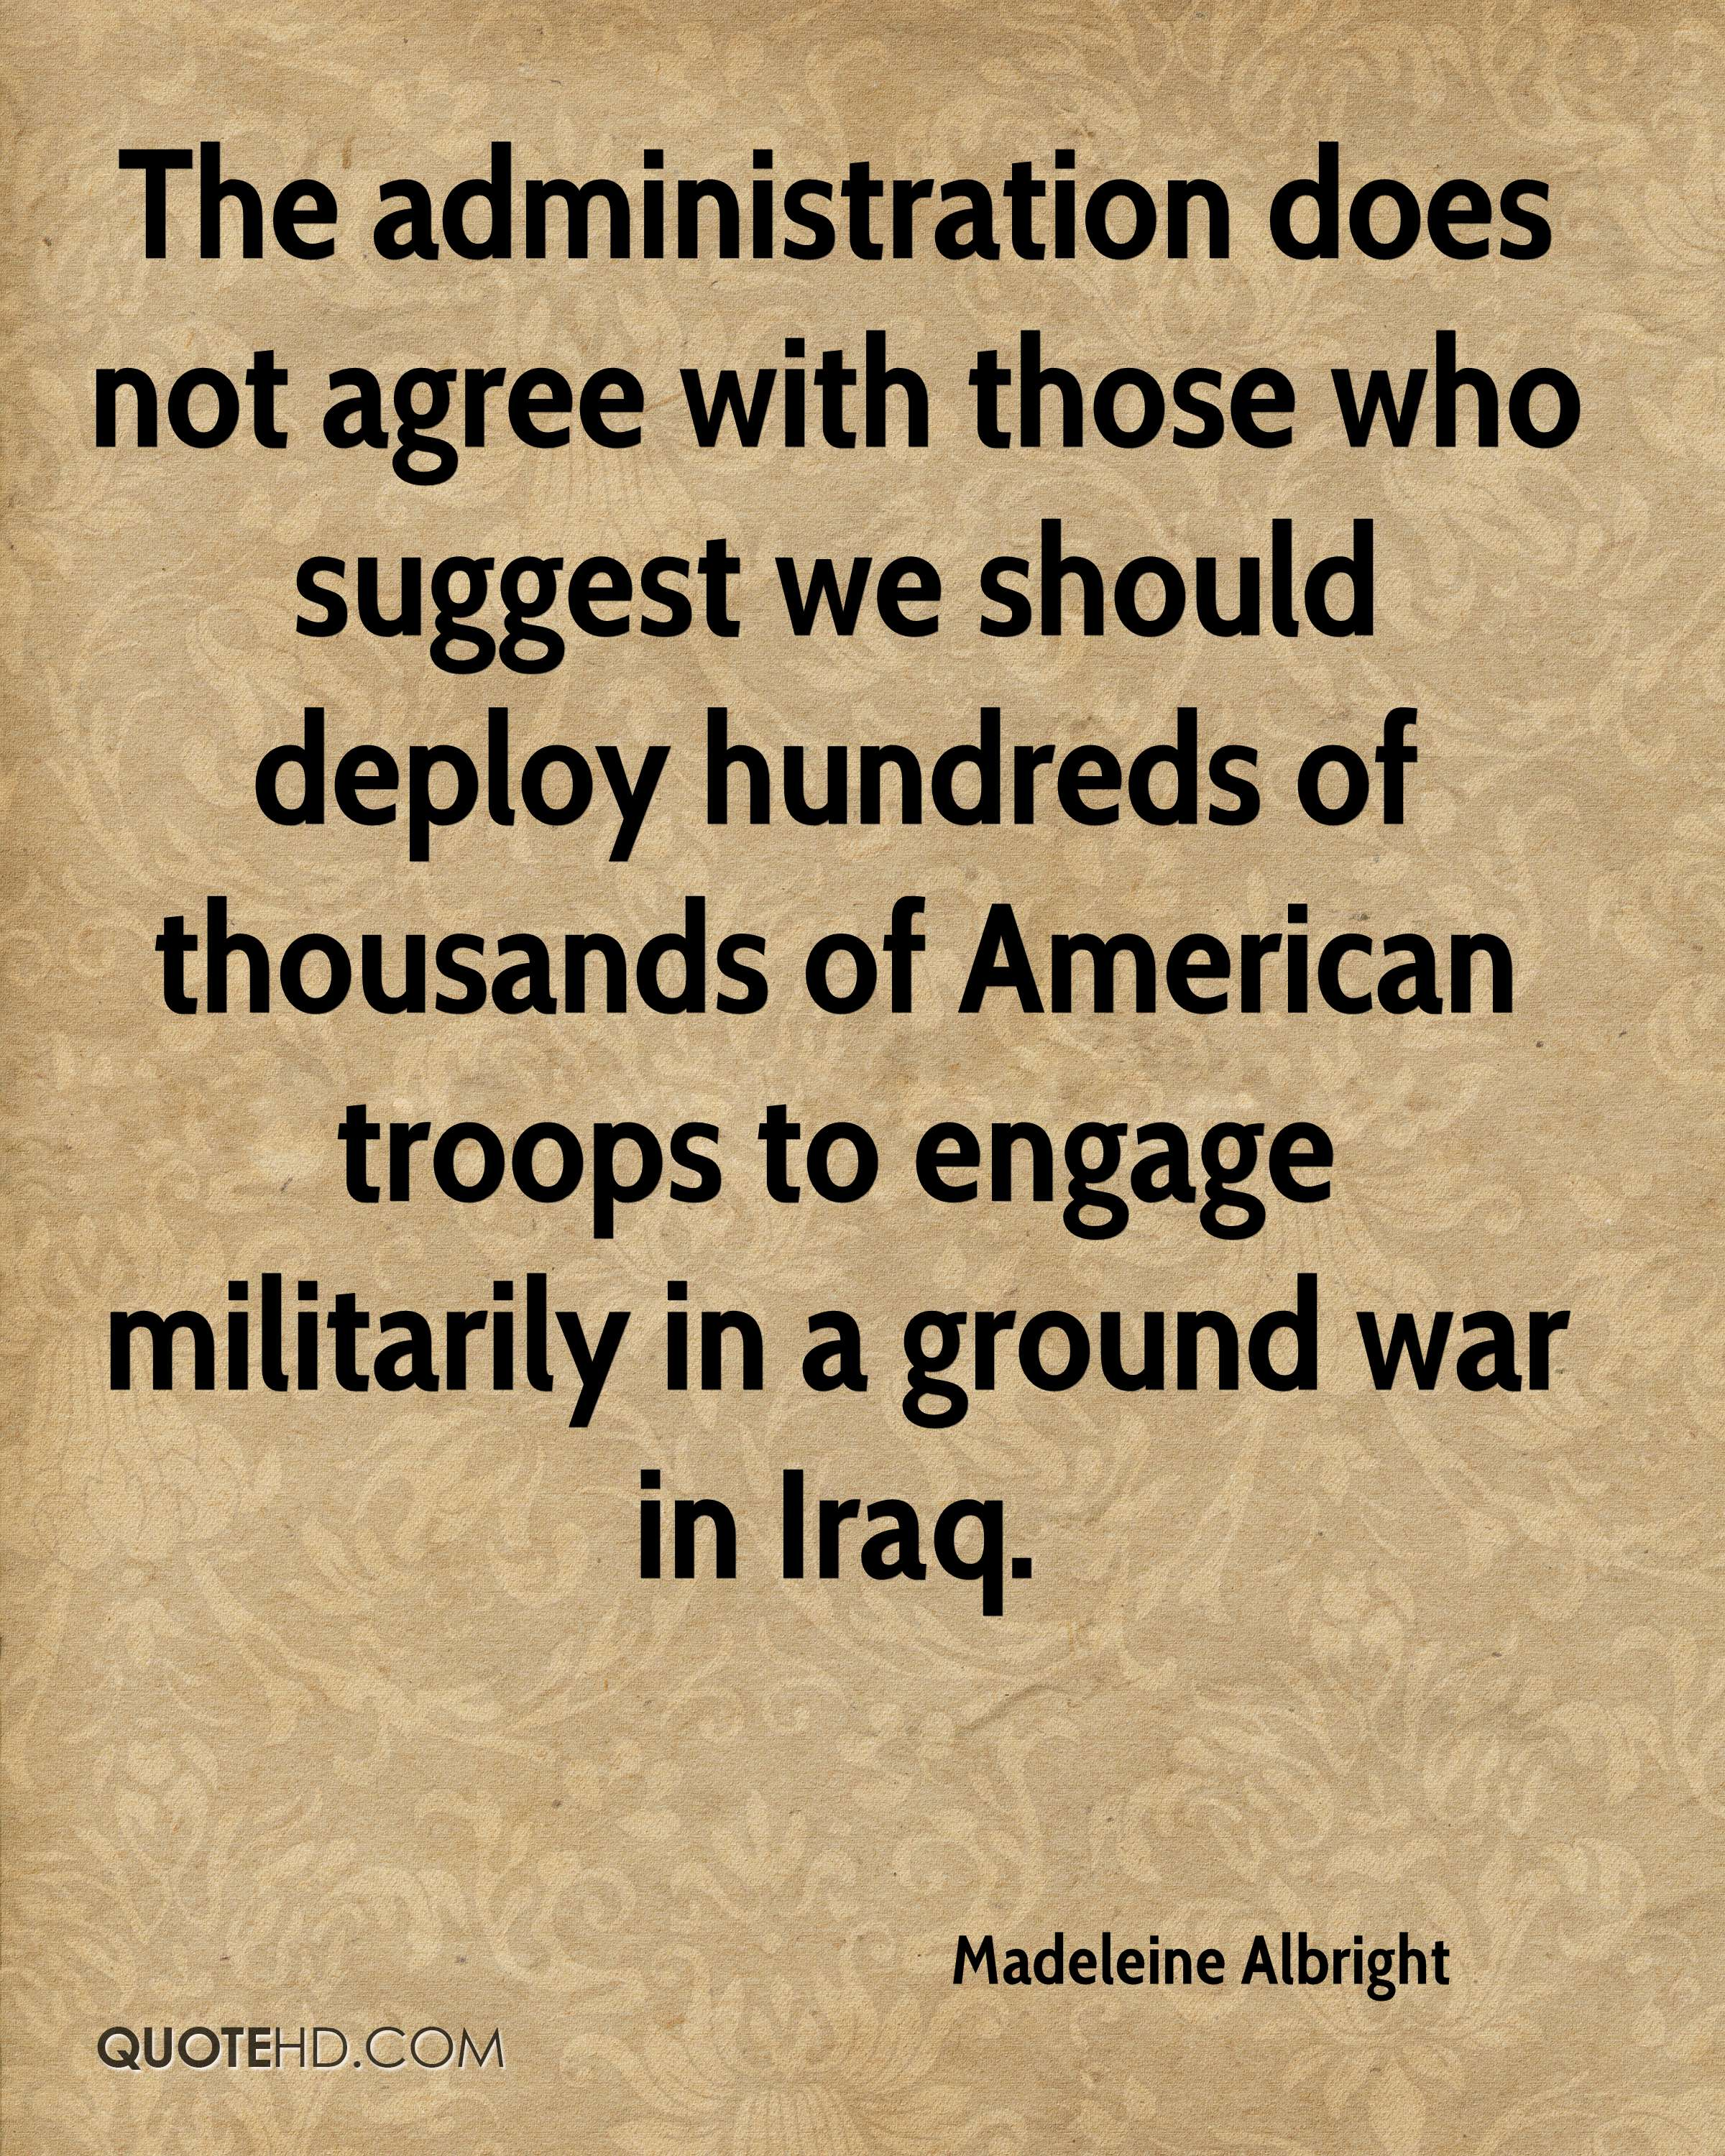 The administration does not agree with those who suggest we should deploy hundreds of thousands of American troops to engage militarily in a ground war in Iraq.